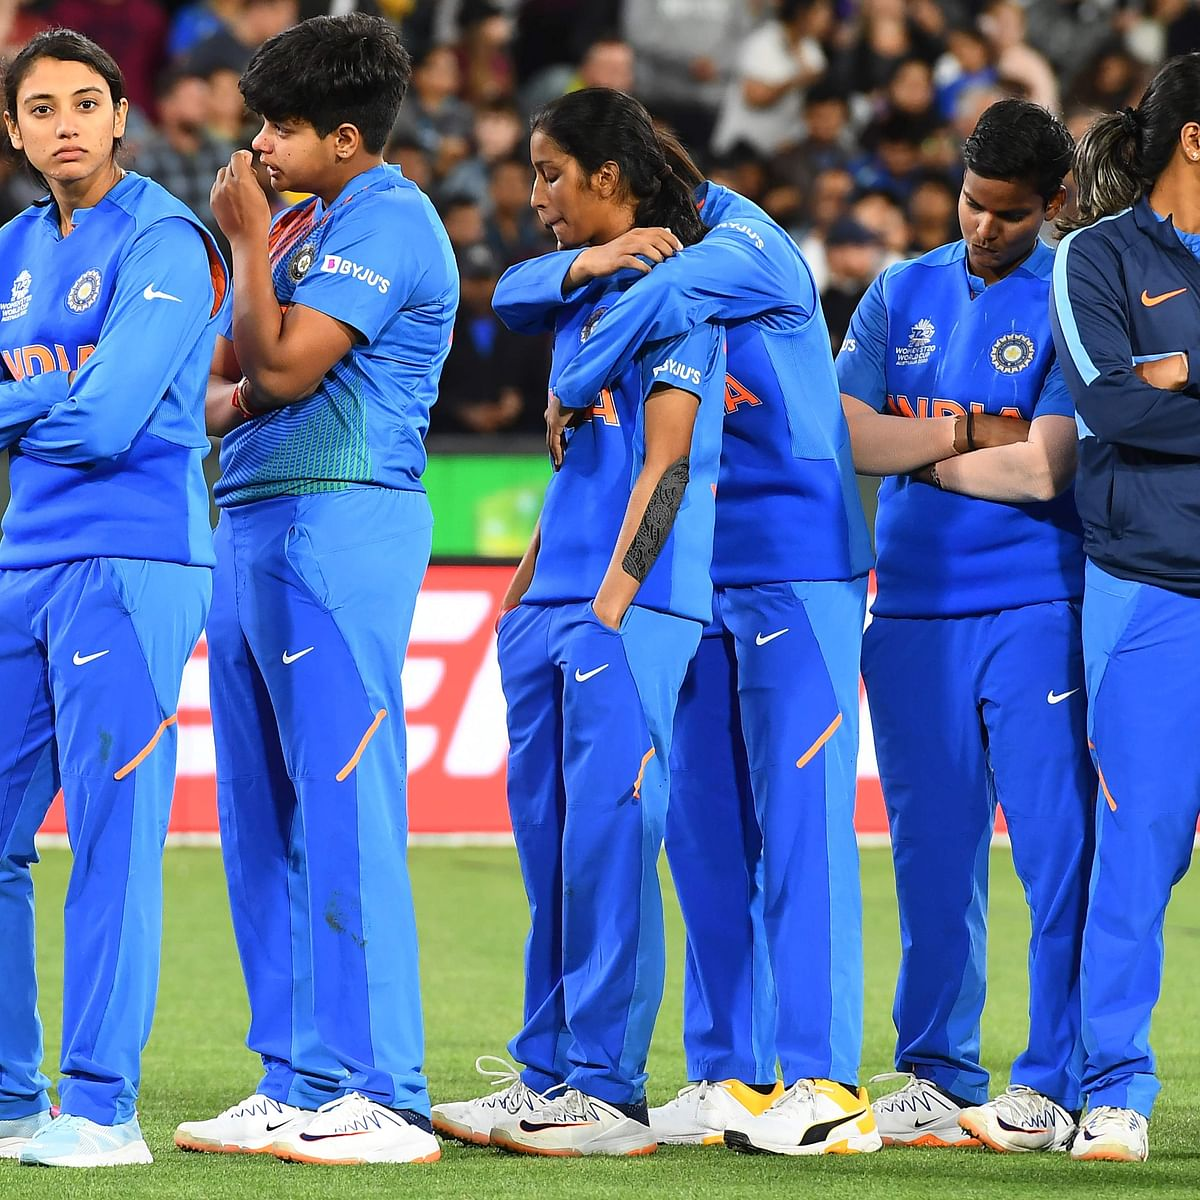 'Dil jeetne wala cricket khela humari ladkiyon ne': Twitter reacts after India lose to Australia in T20 World Cup final